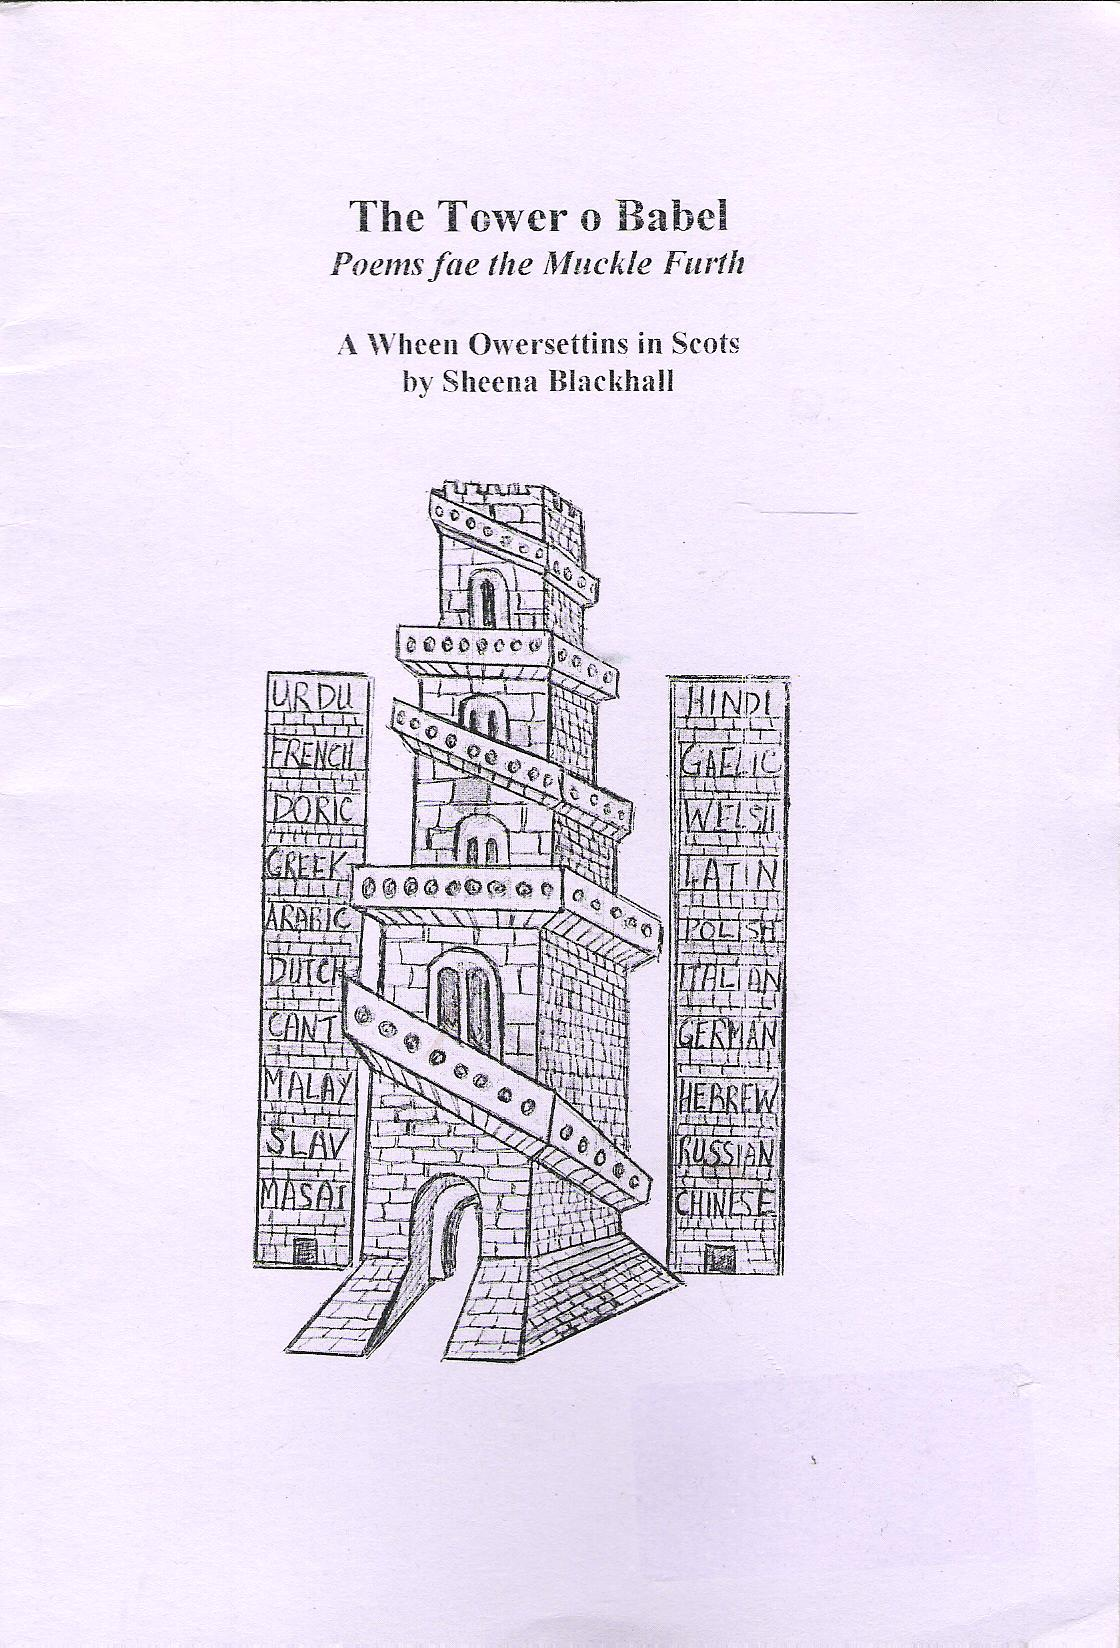 Image for The Tower of Babel: Poems fae the Muckle Furth, A Wheen Owersettins in Scots.